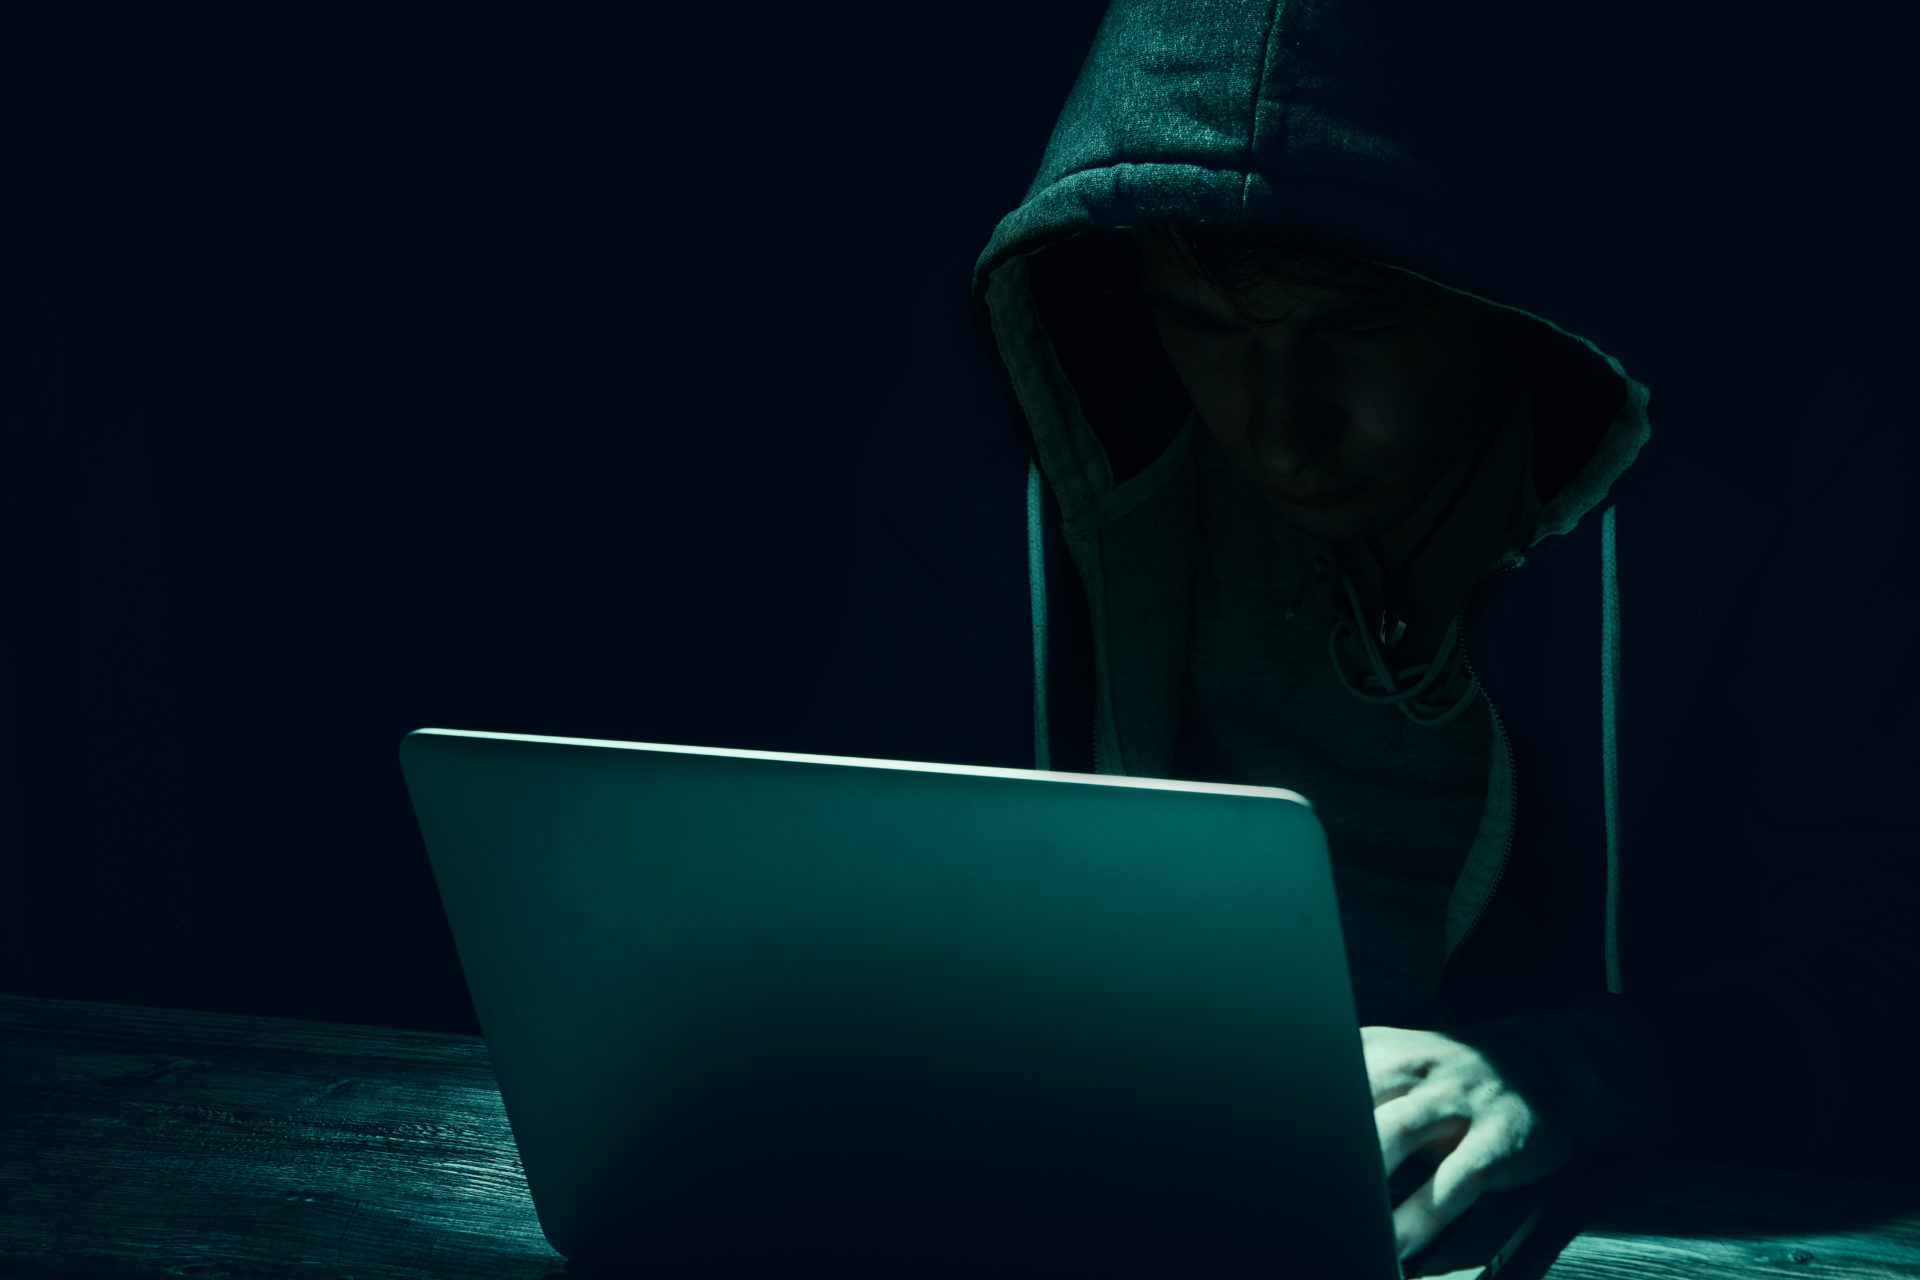 Under the hood of a common phishing scam